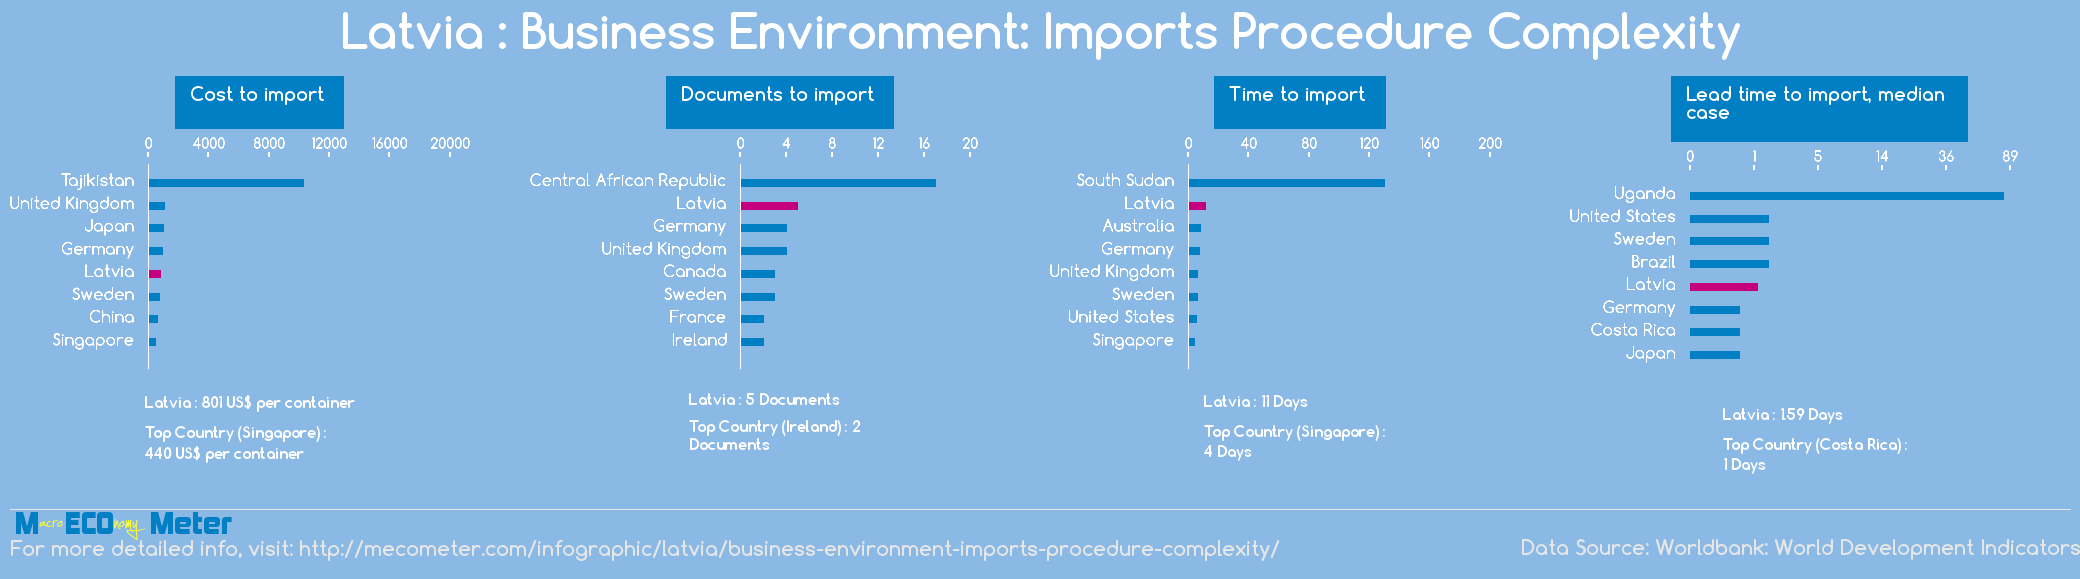 Latvia : Business Environment: Imports Procedure Complexity